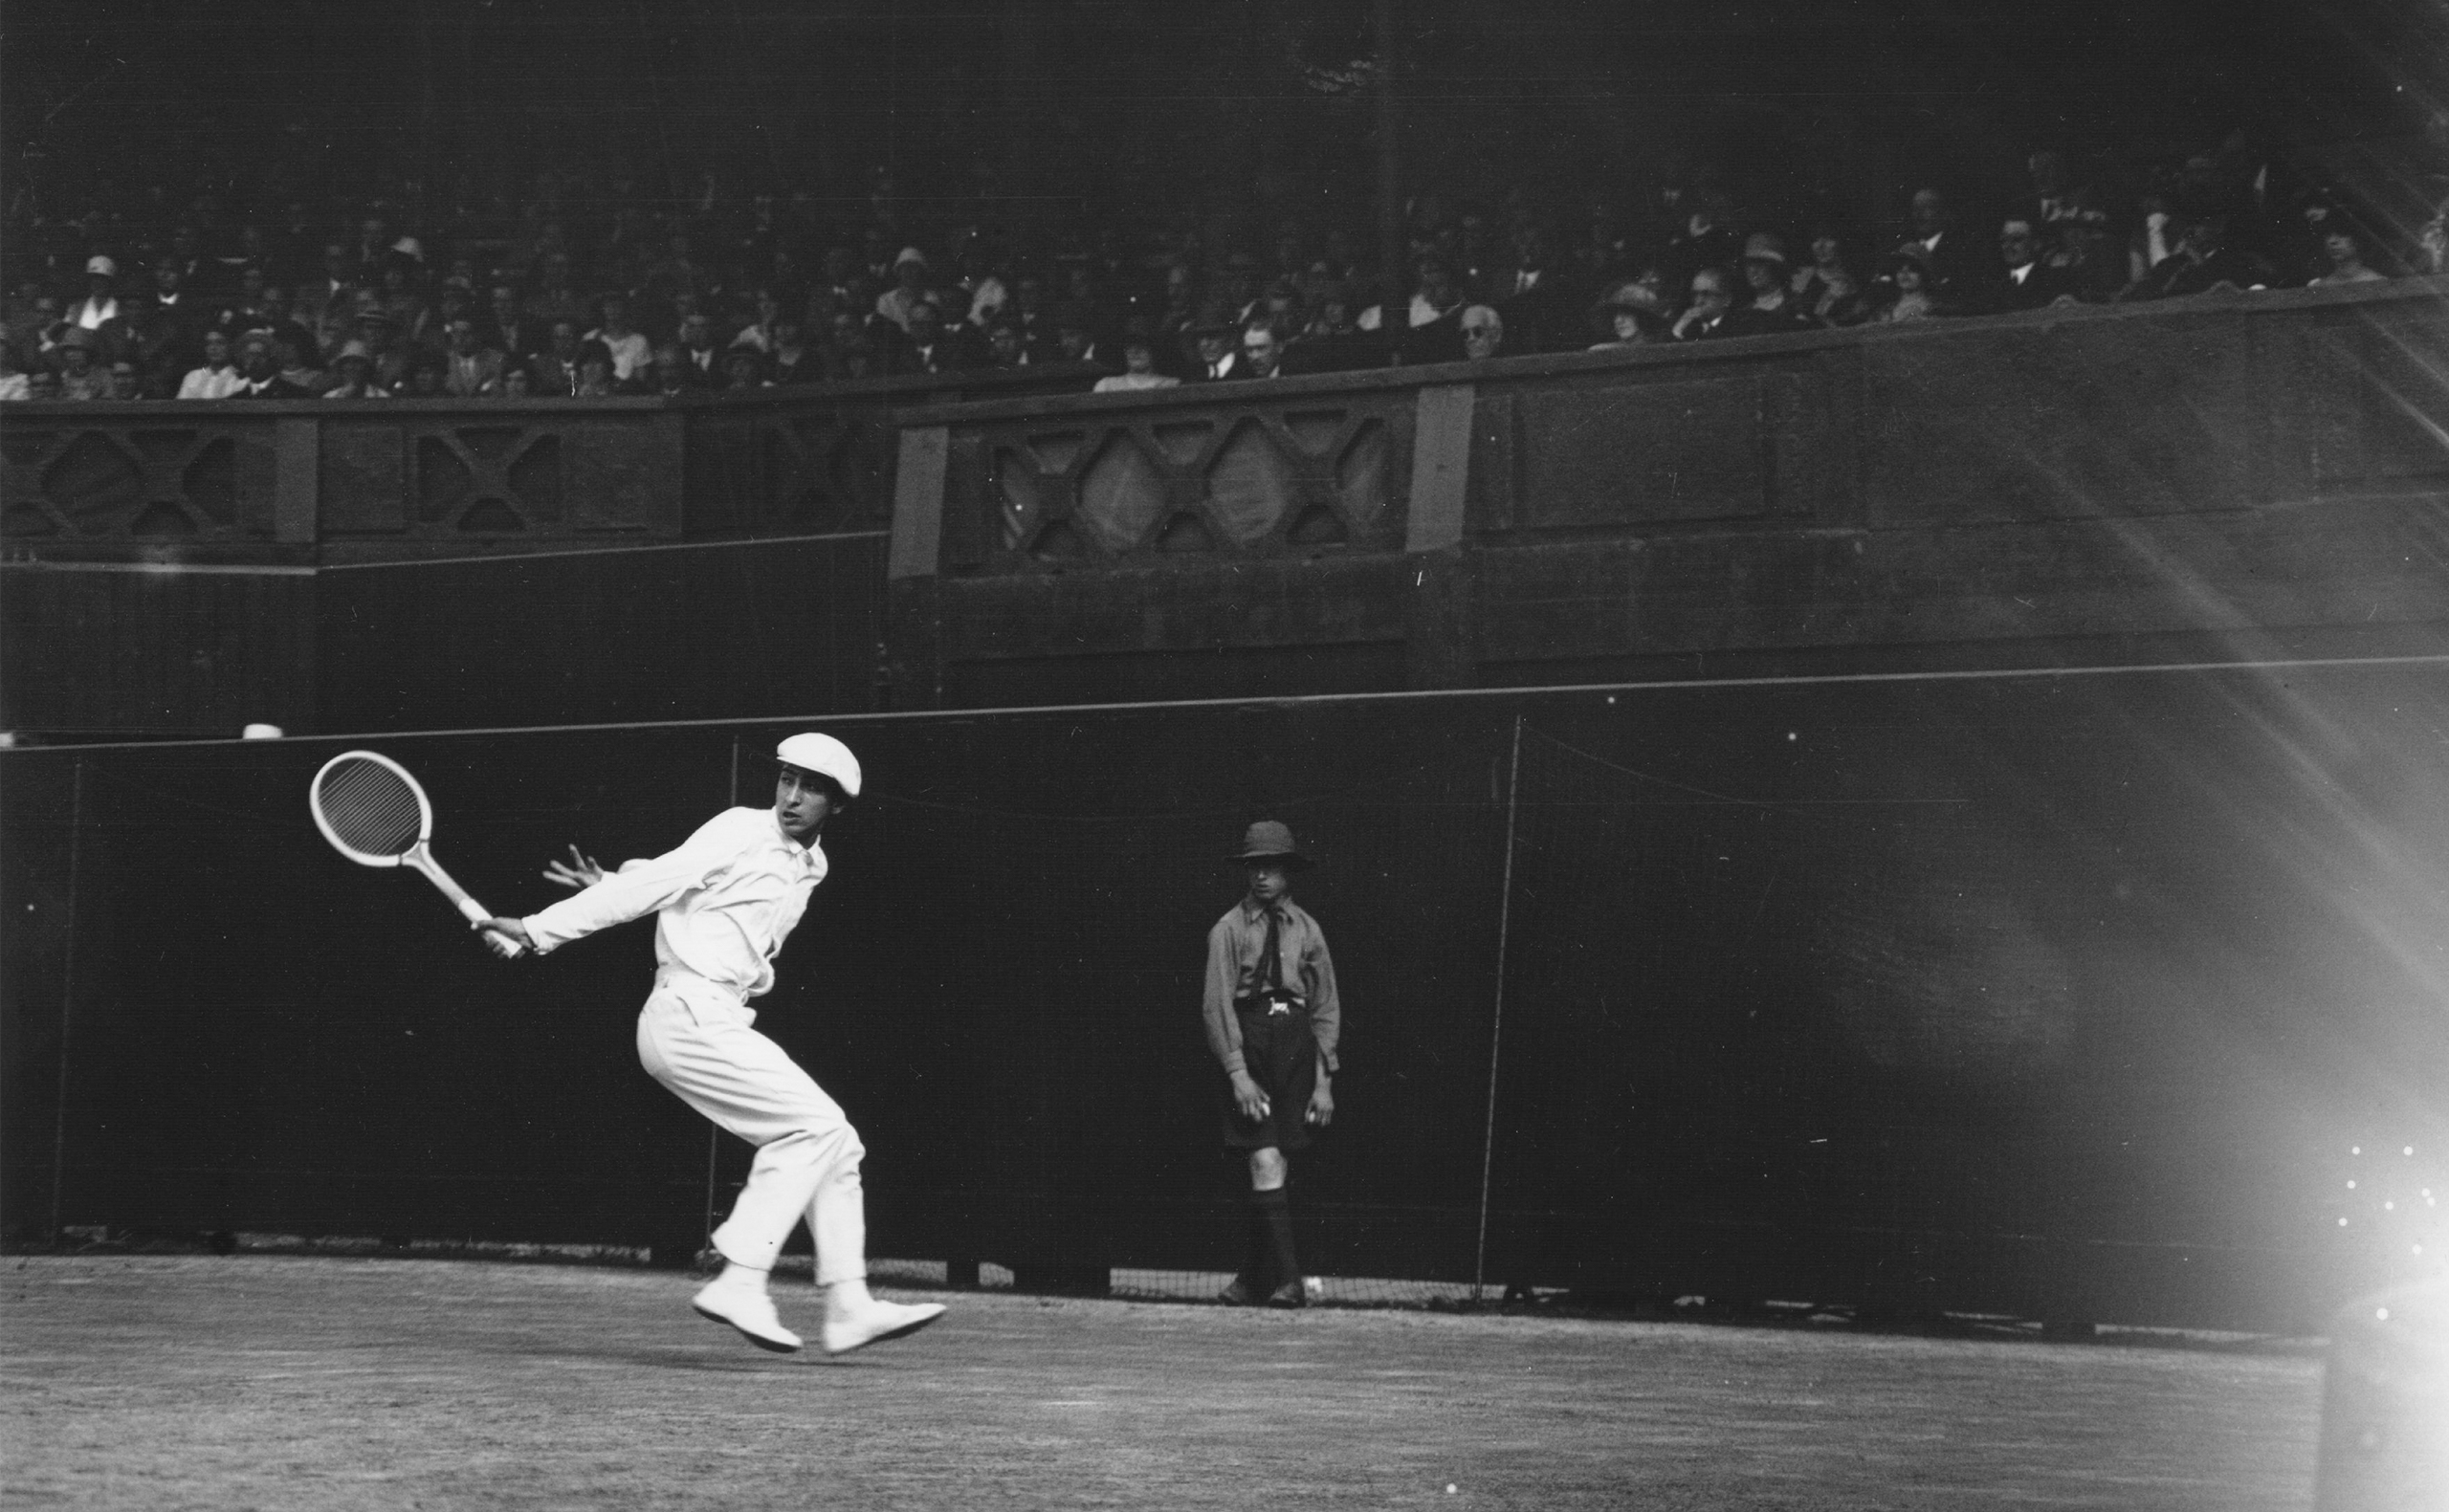 Rene Lacoste competes at the men's semifinals in 1925